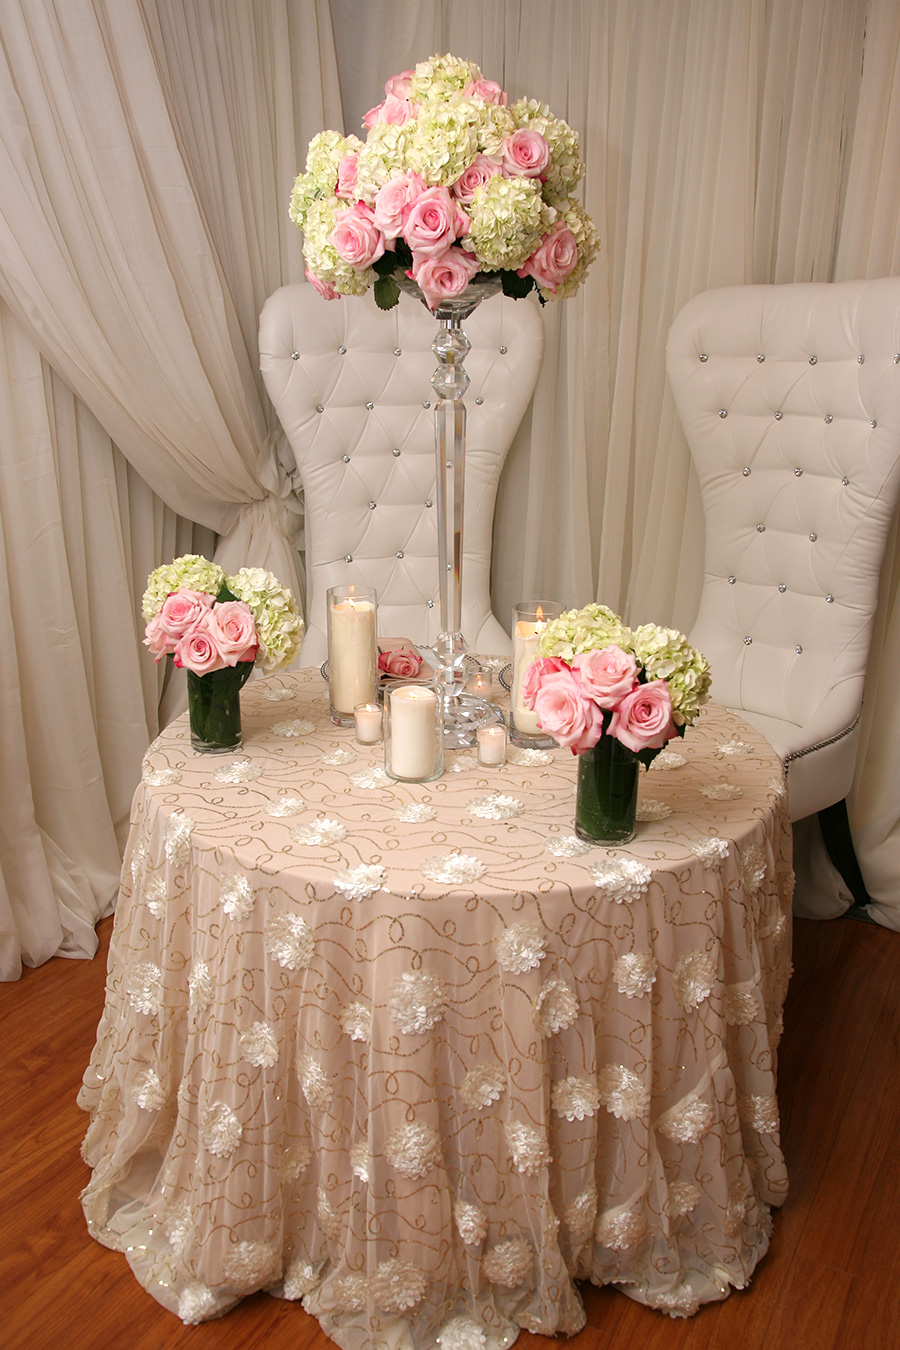 Baby Blue Crush Tablecloth  Right Choice Linen